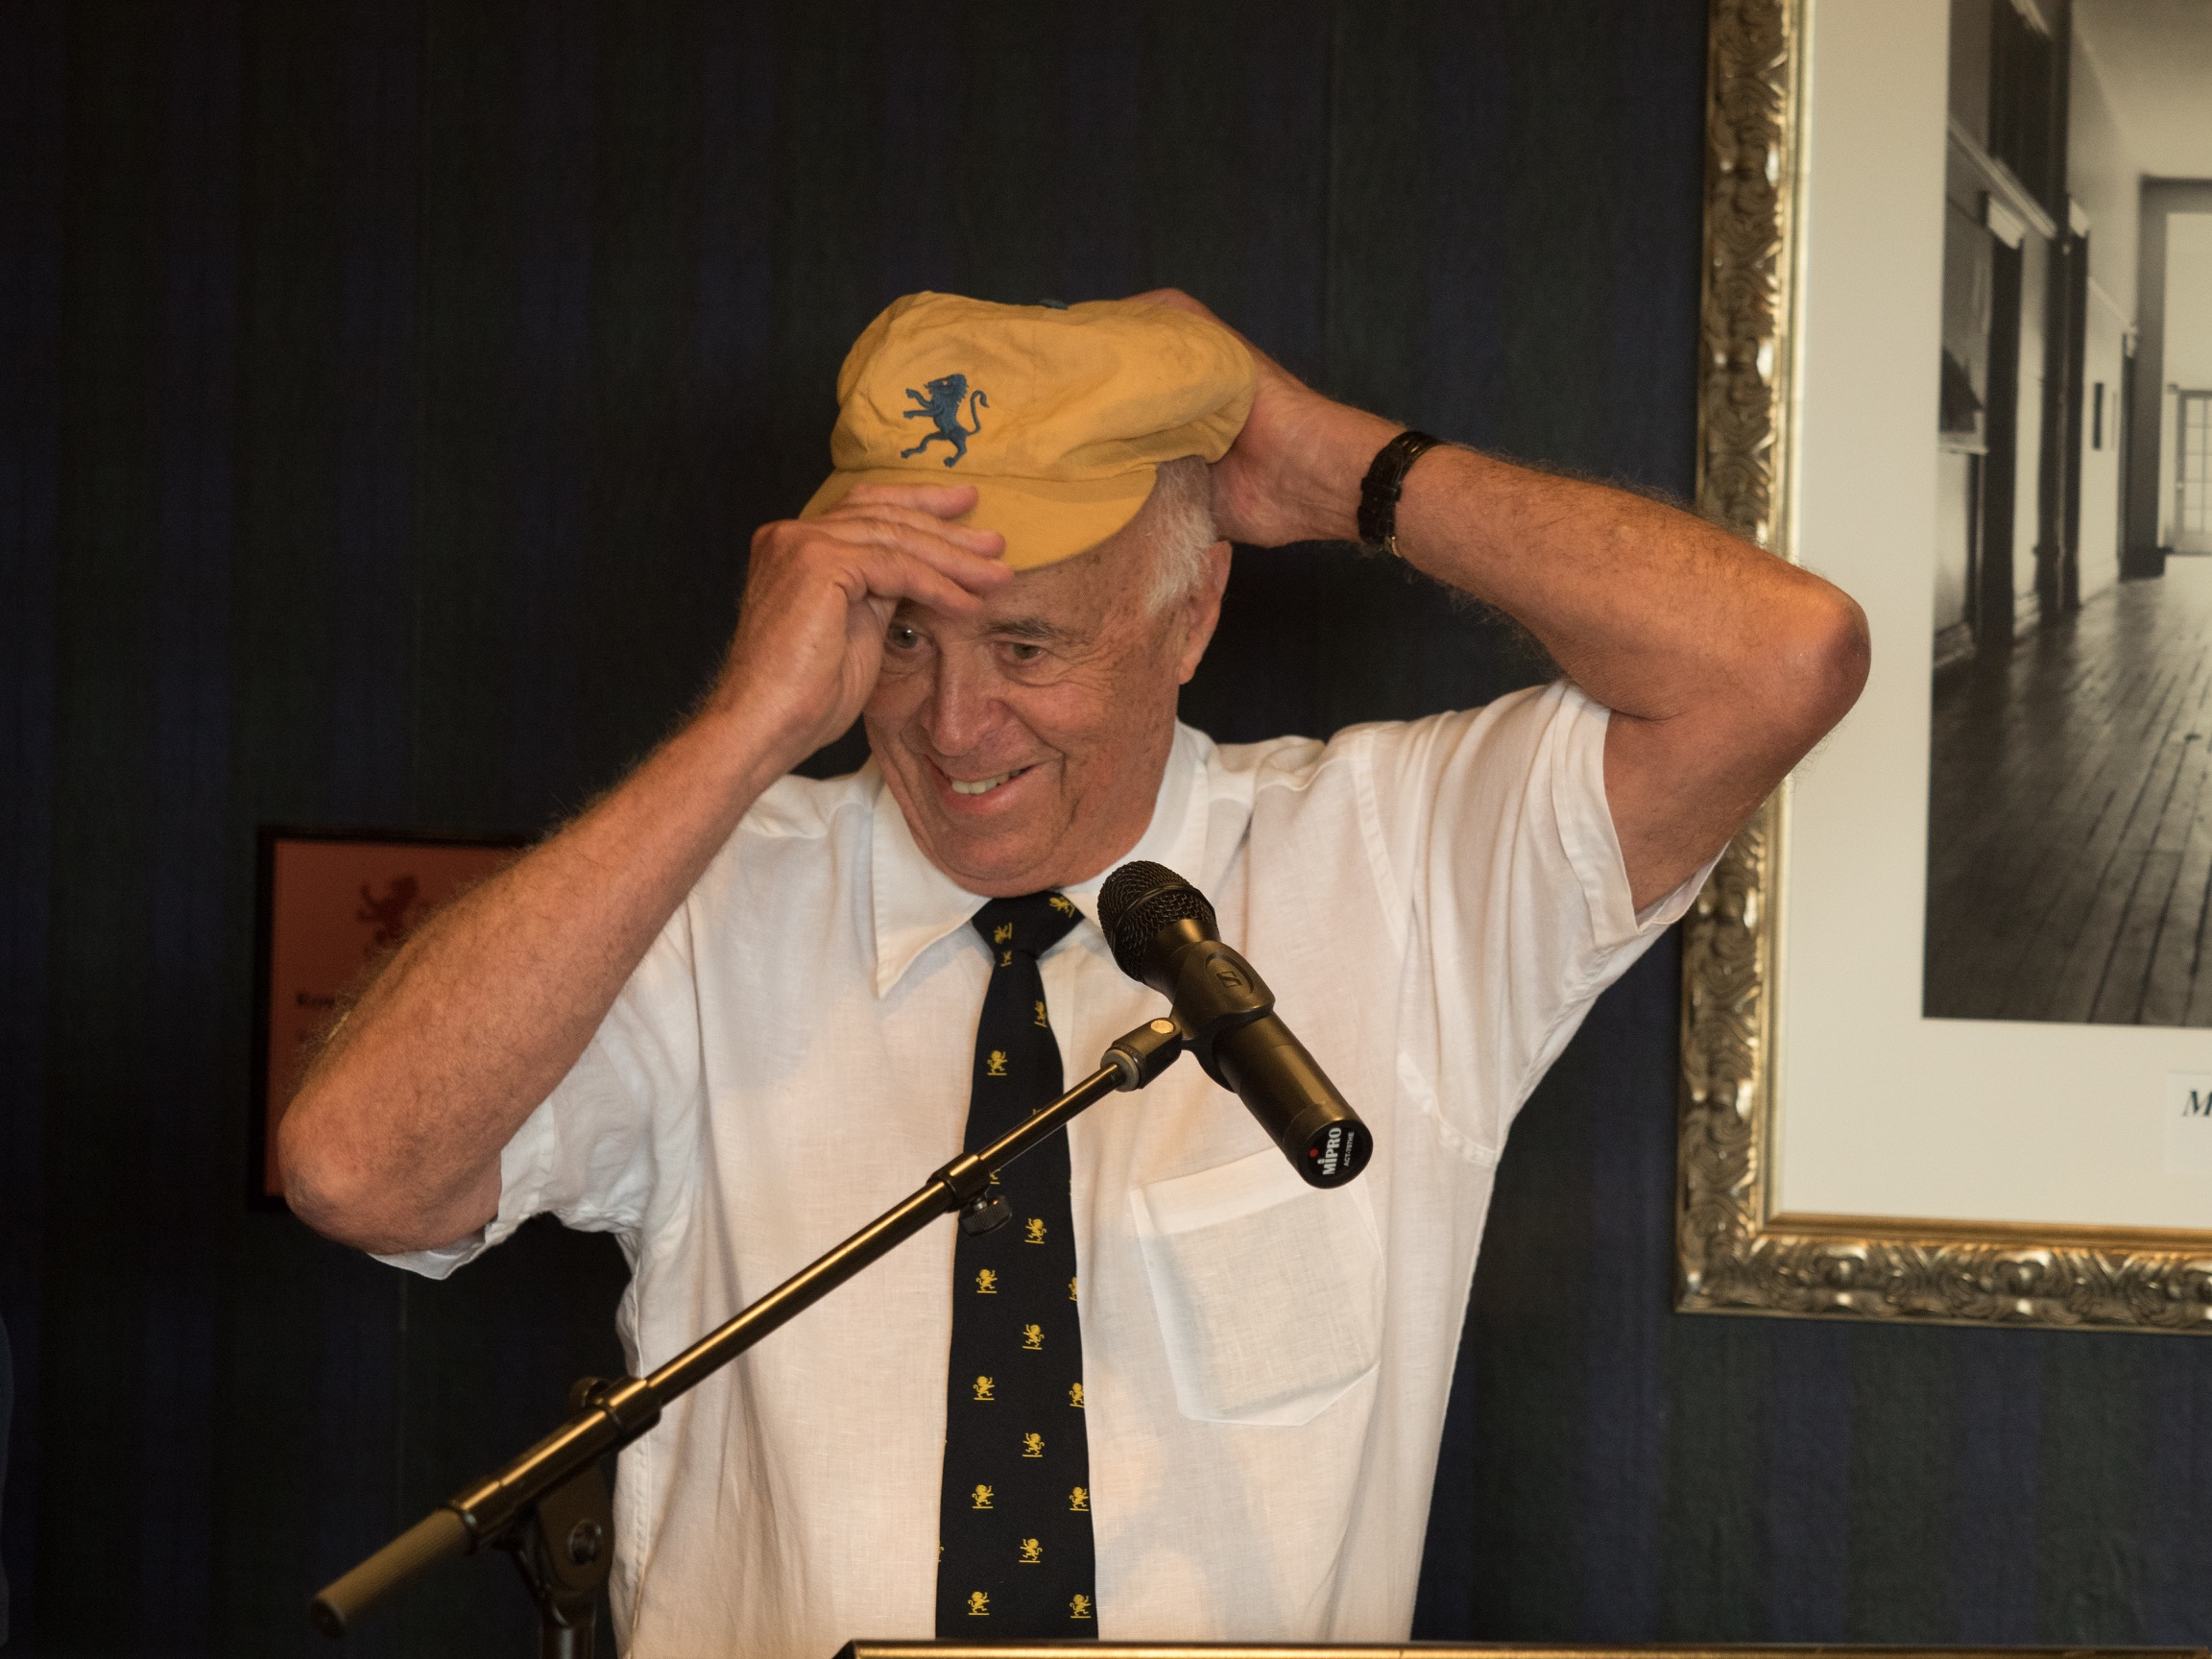 Peter Howarth OAM wears a Cricket cap